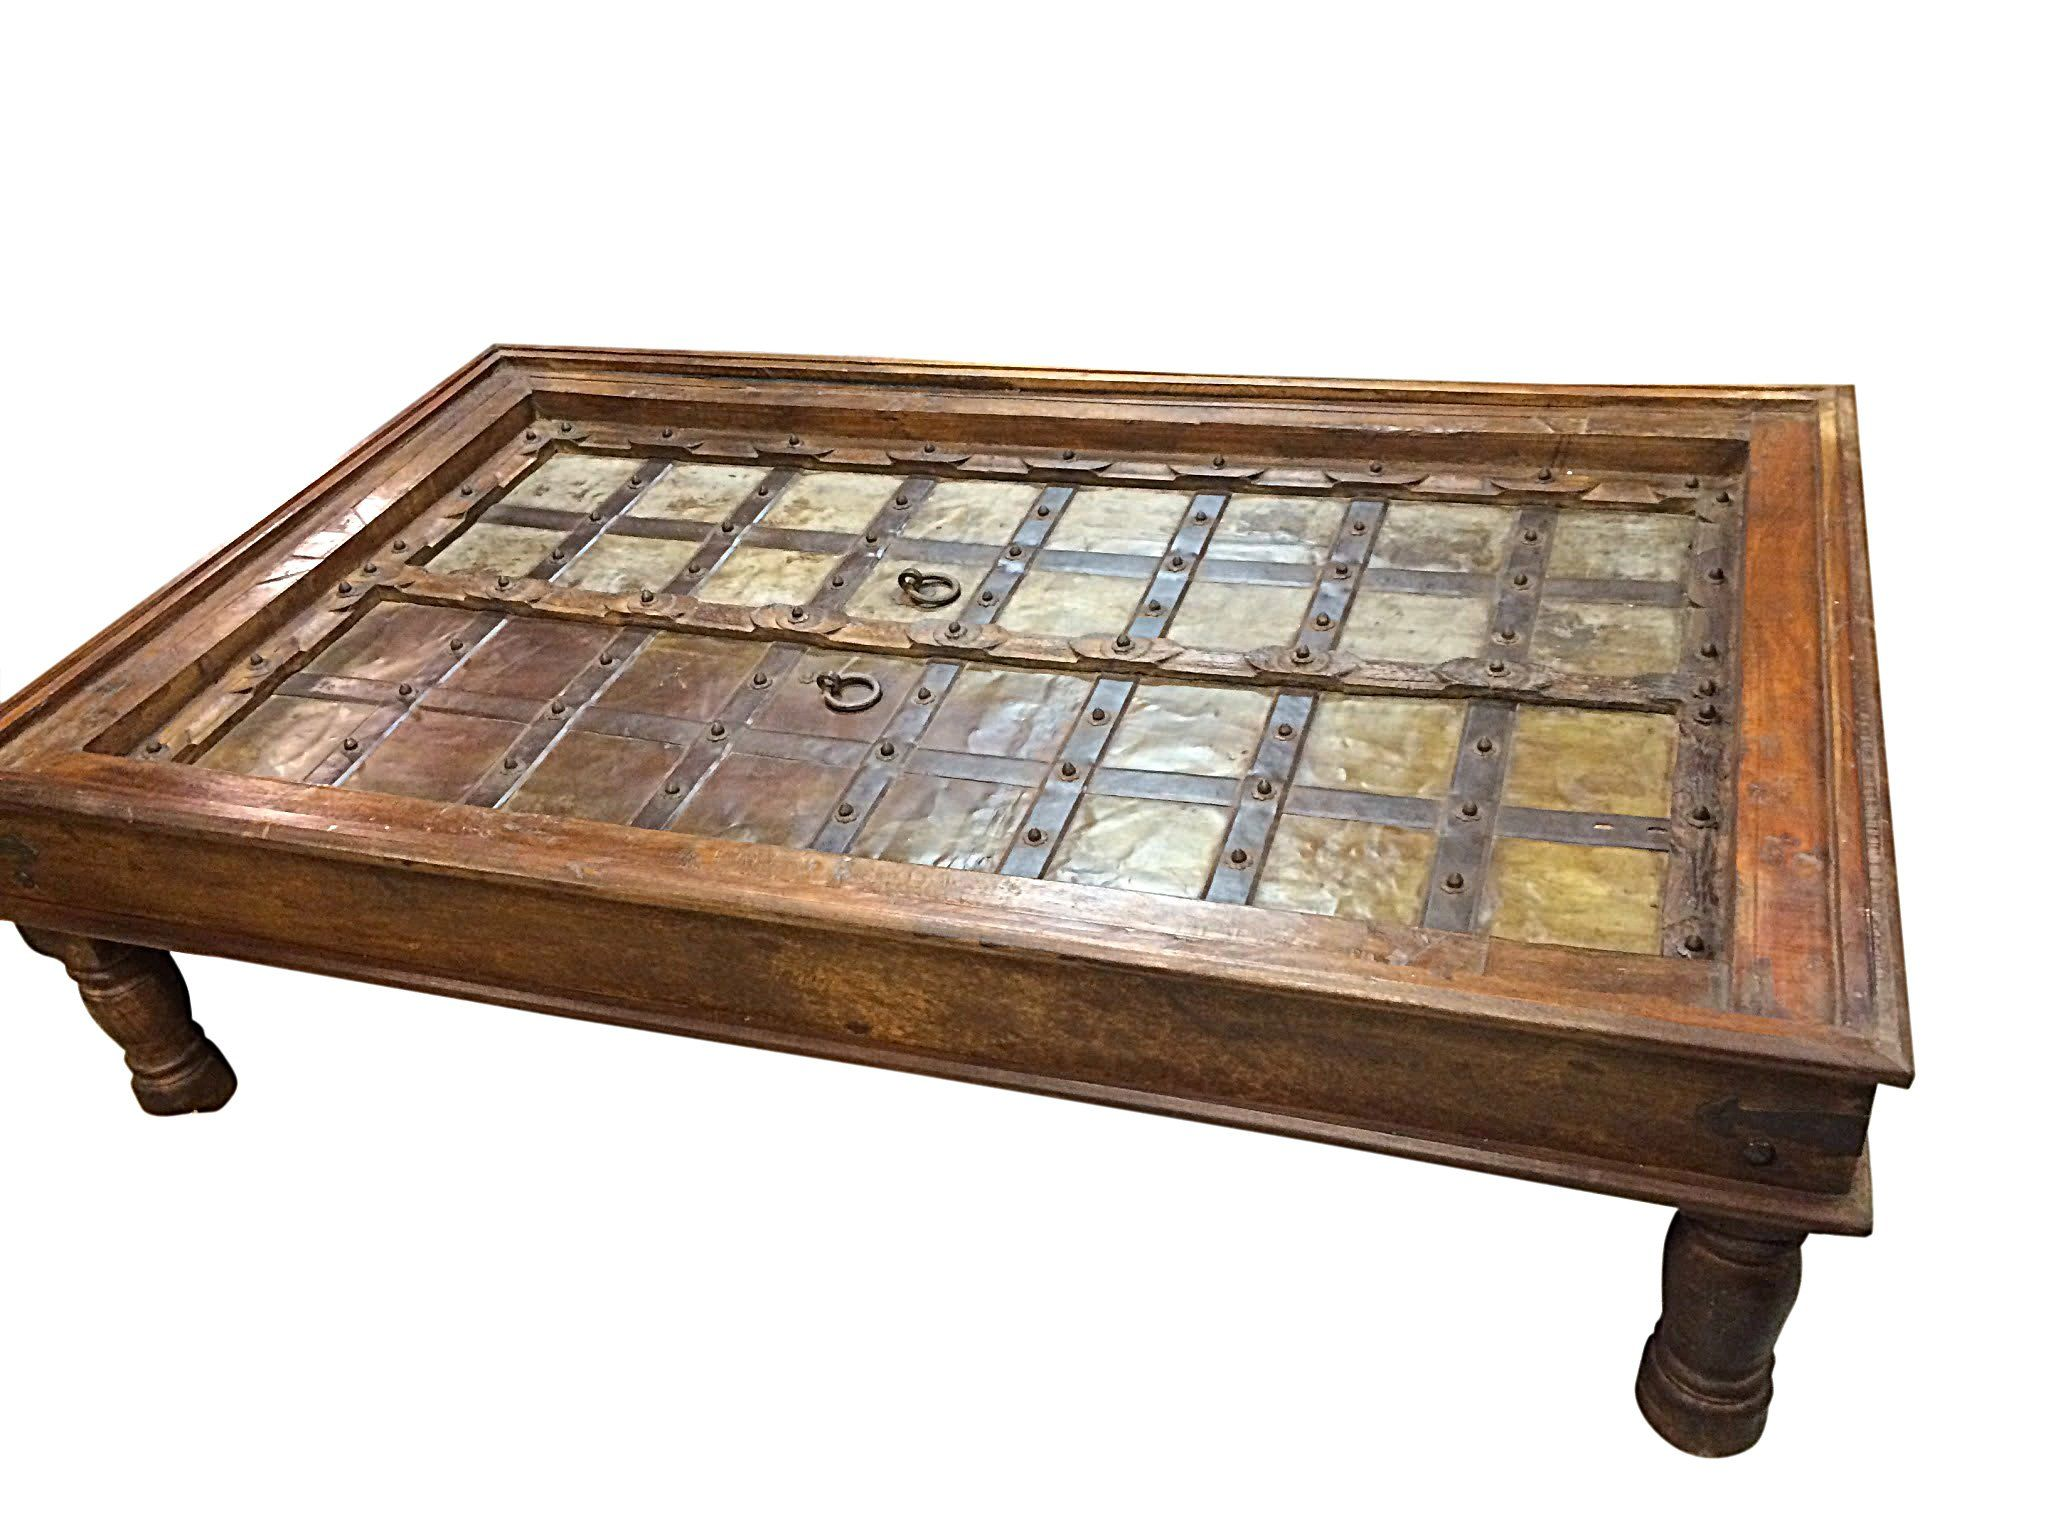 Antique coffee table indian furniture handmade wood for Indian coffee table